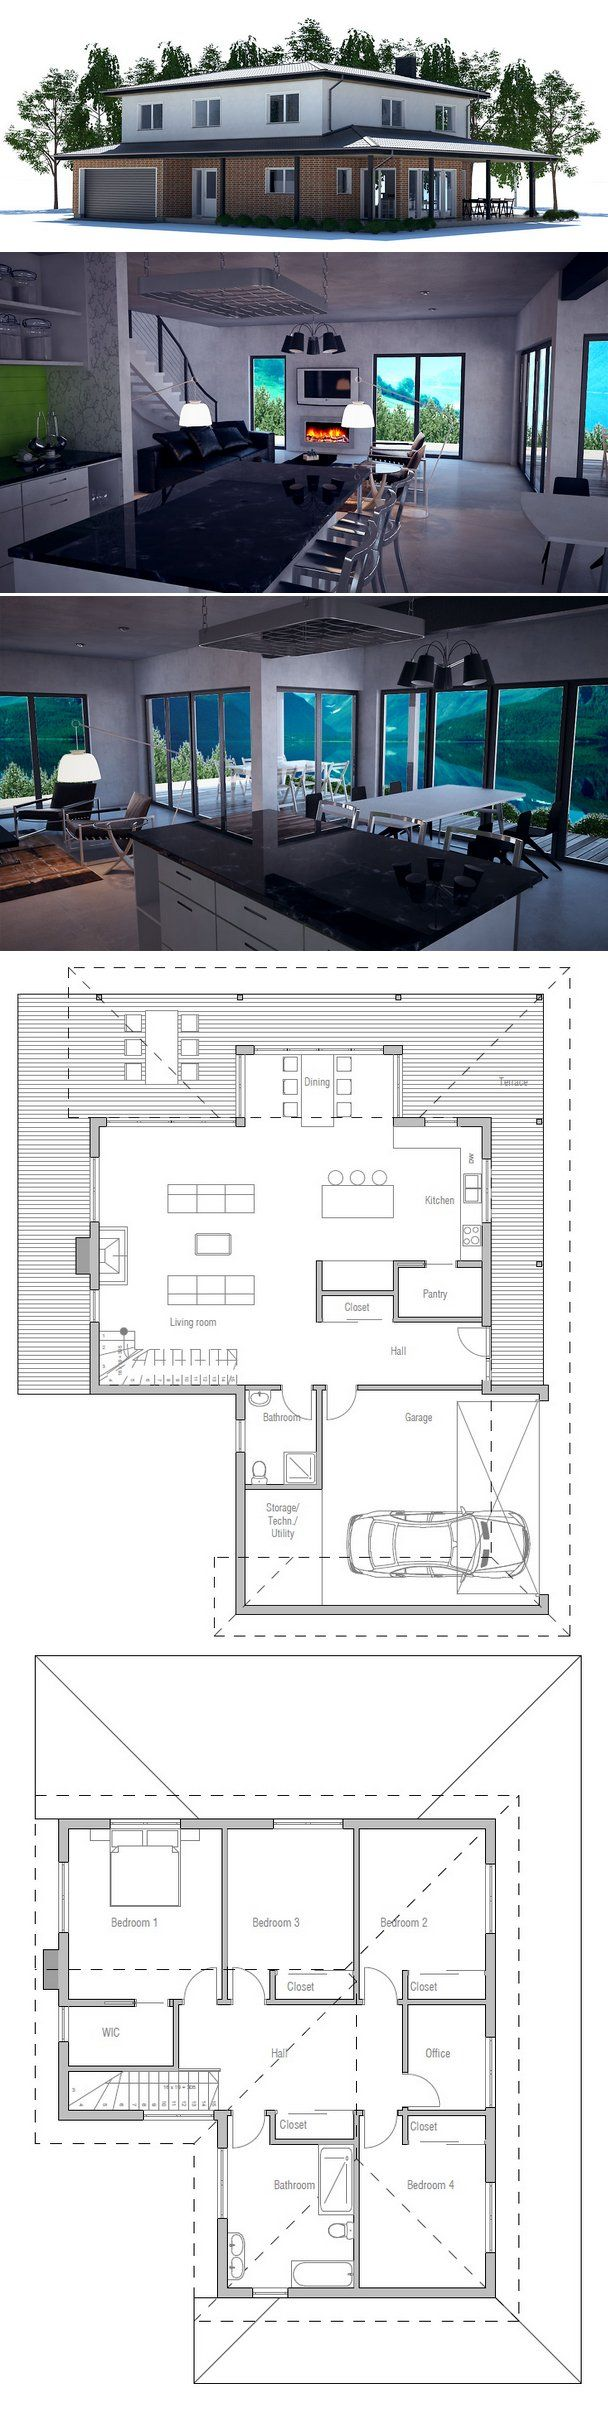 House plan floor plan from concepthome com